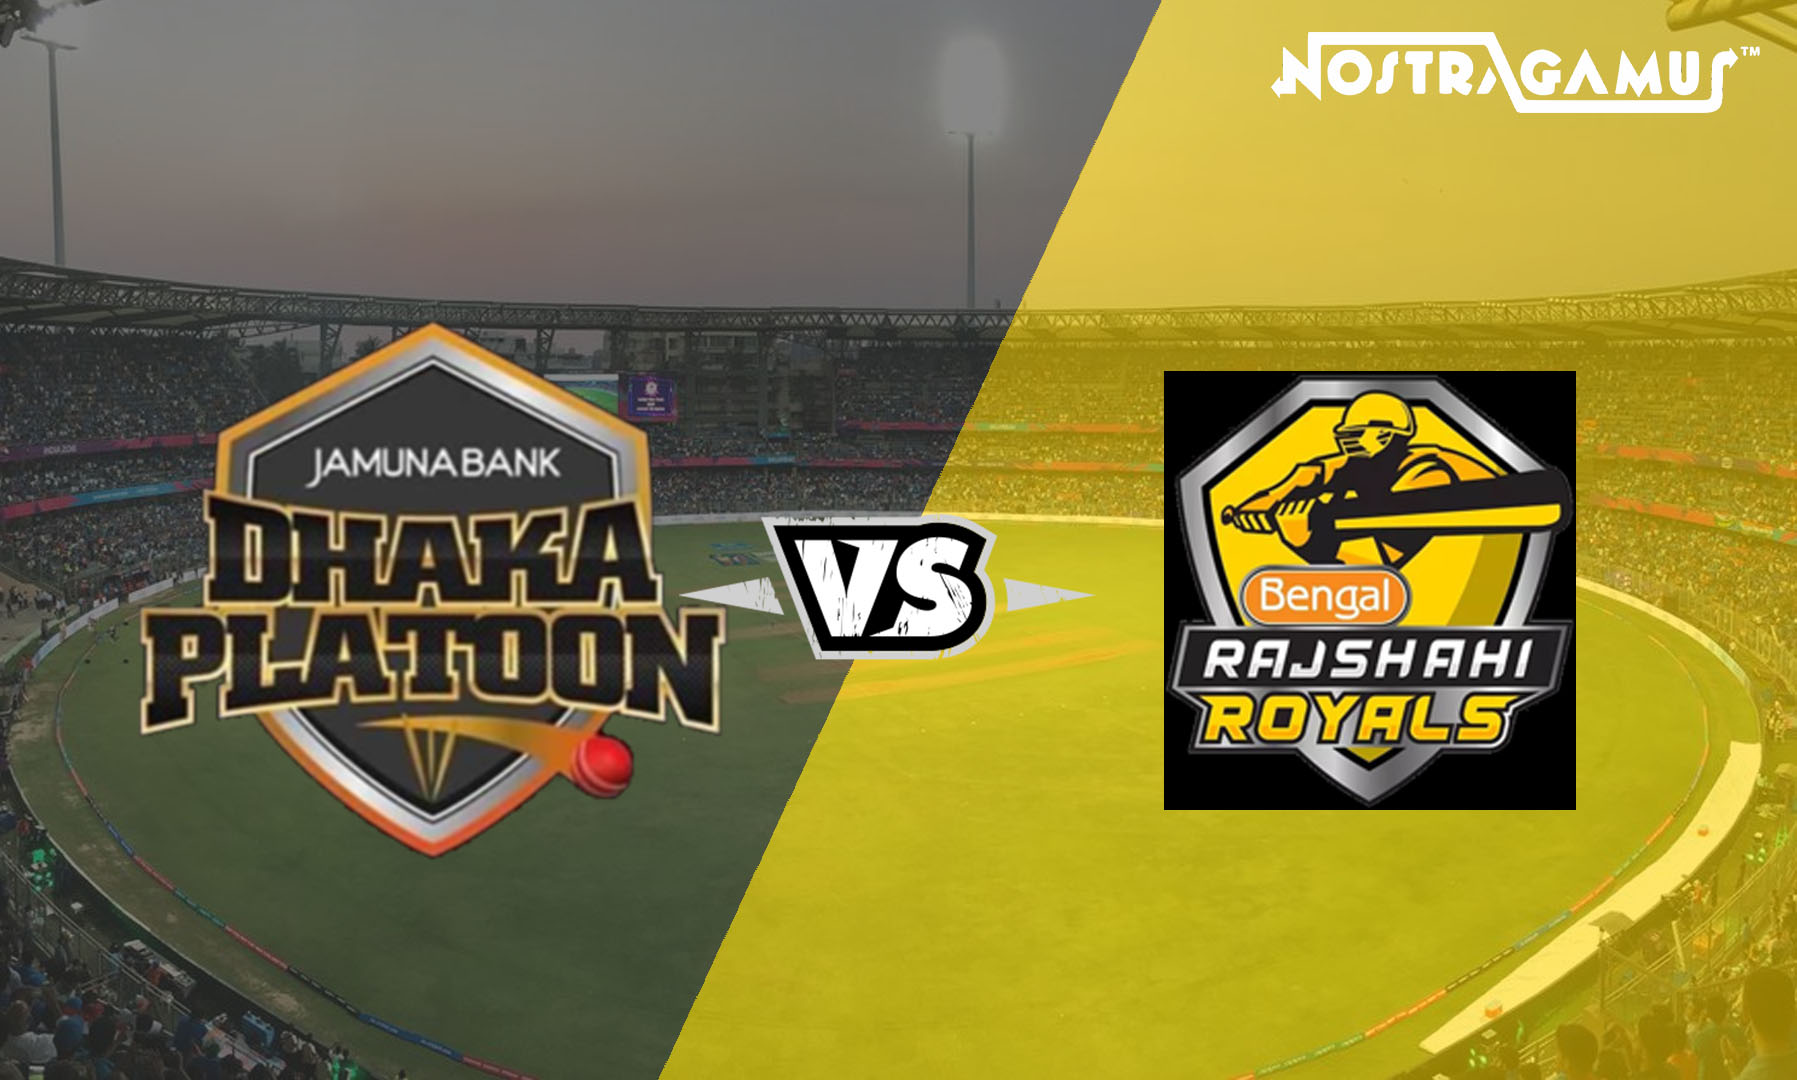 Dhaka Platoon vs Rajshahi Royals: BPL 2019 Match Prediction